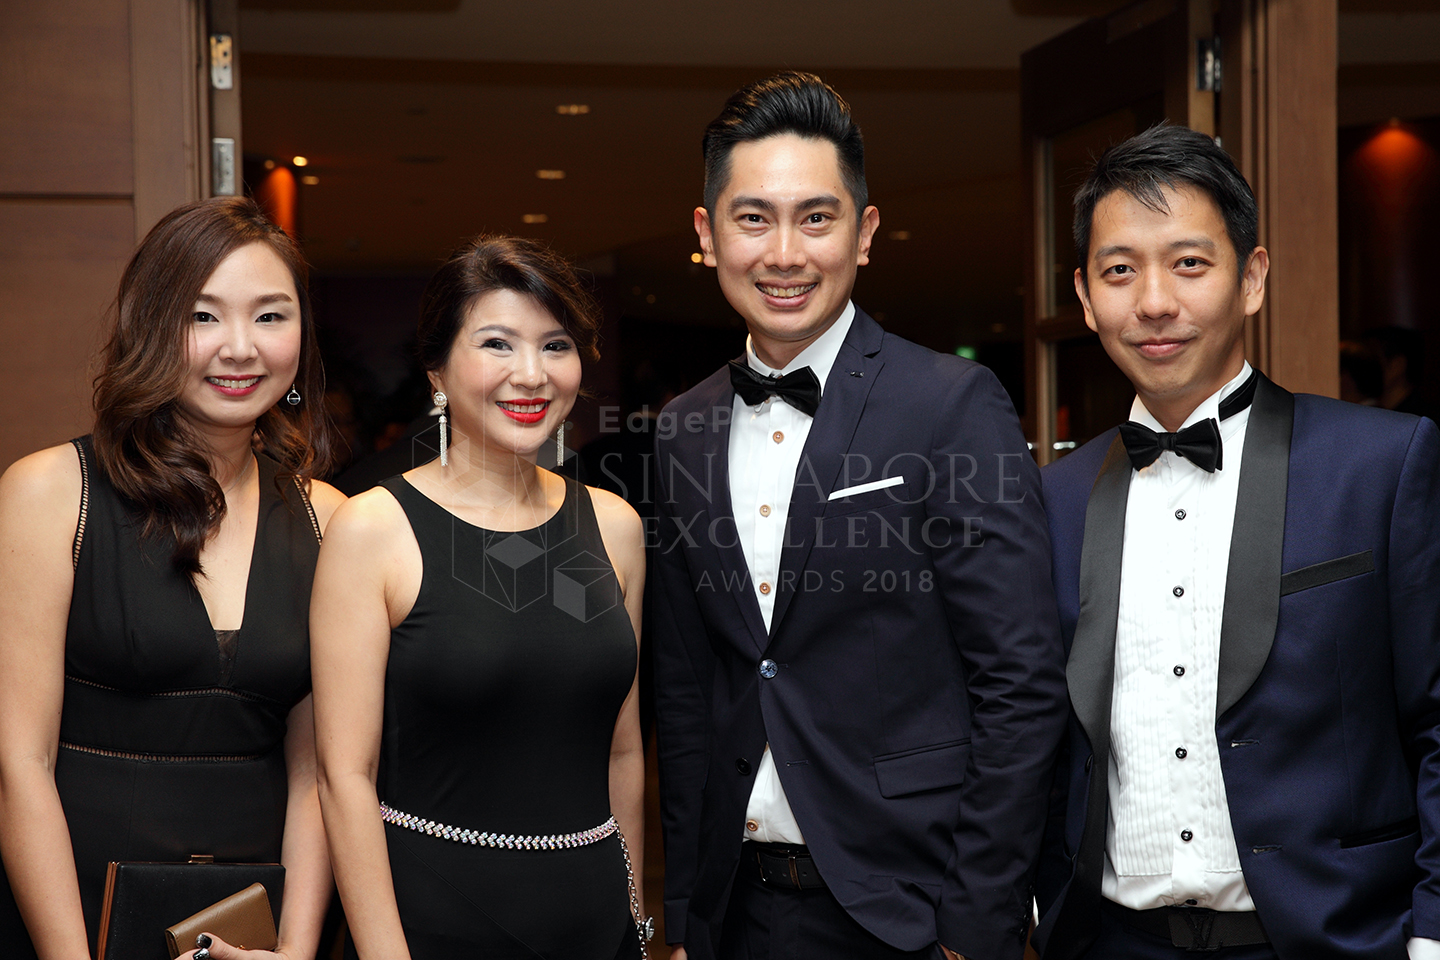 LEI_EDGEPROP_EXCELLENCE_AWARDS_2018_13_SIC.jpg